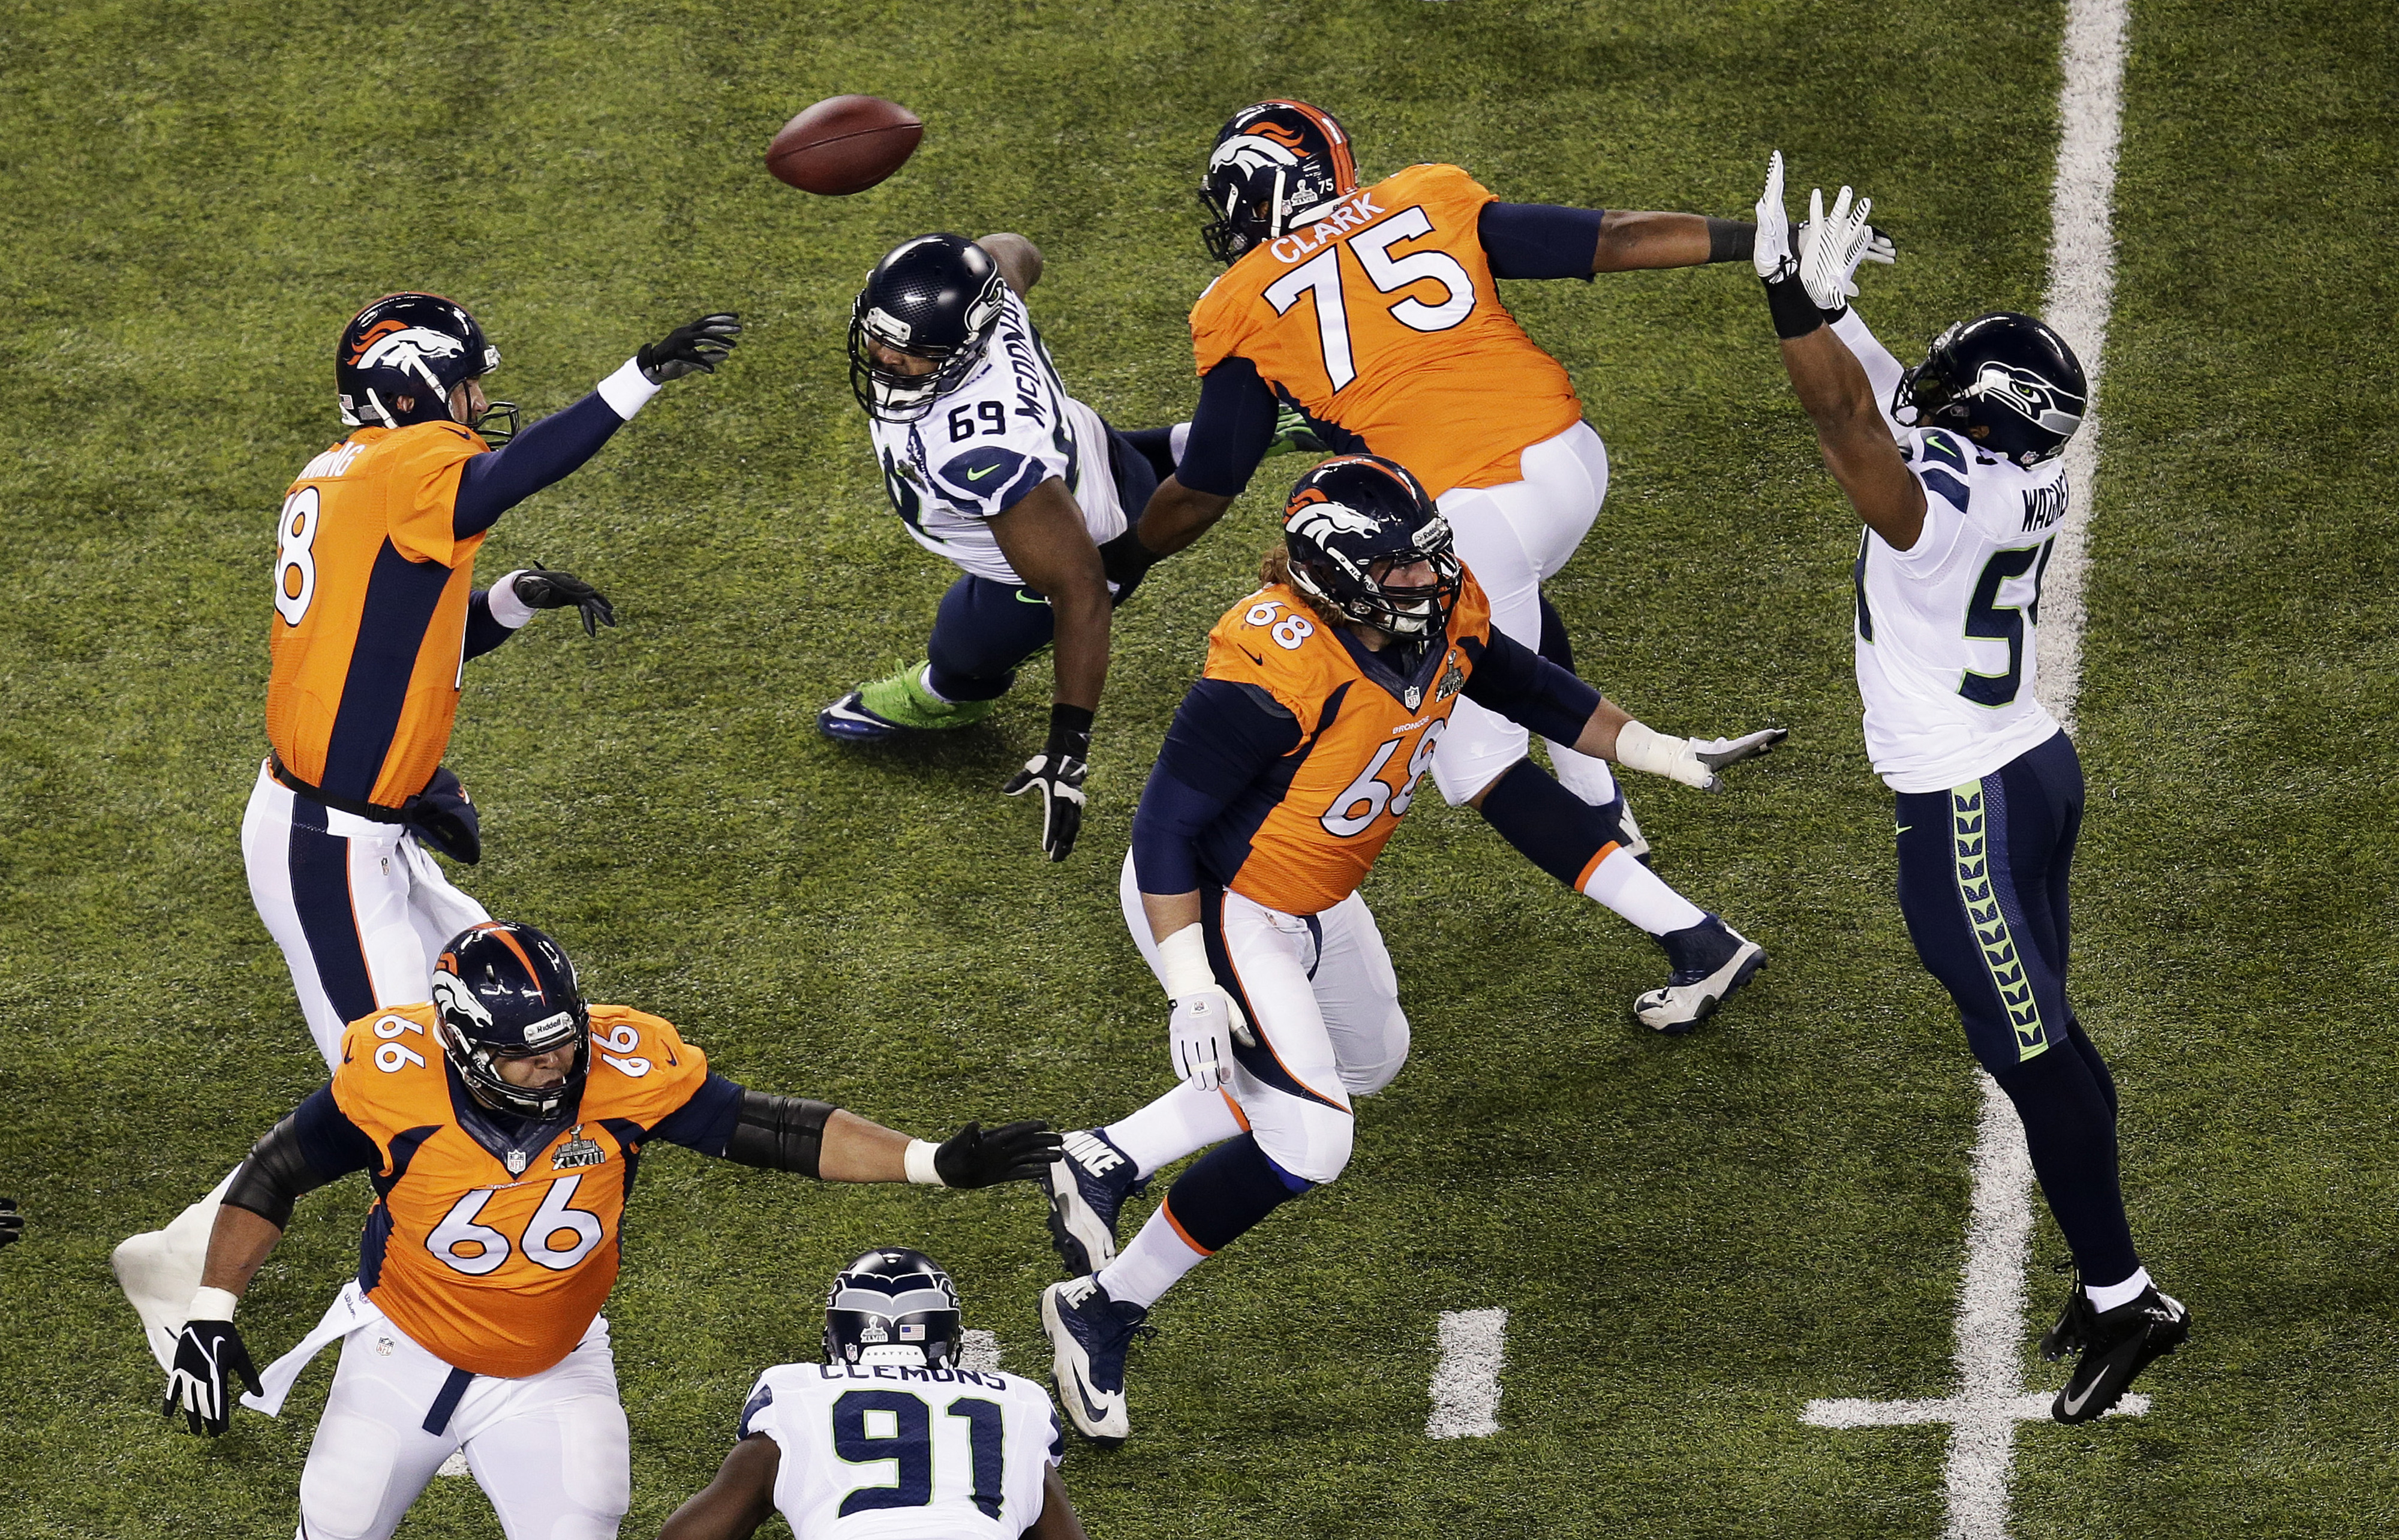 What's the biggest Super Bowl comeback in history?